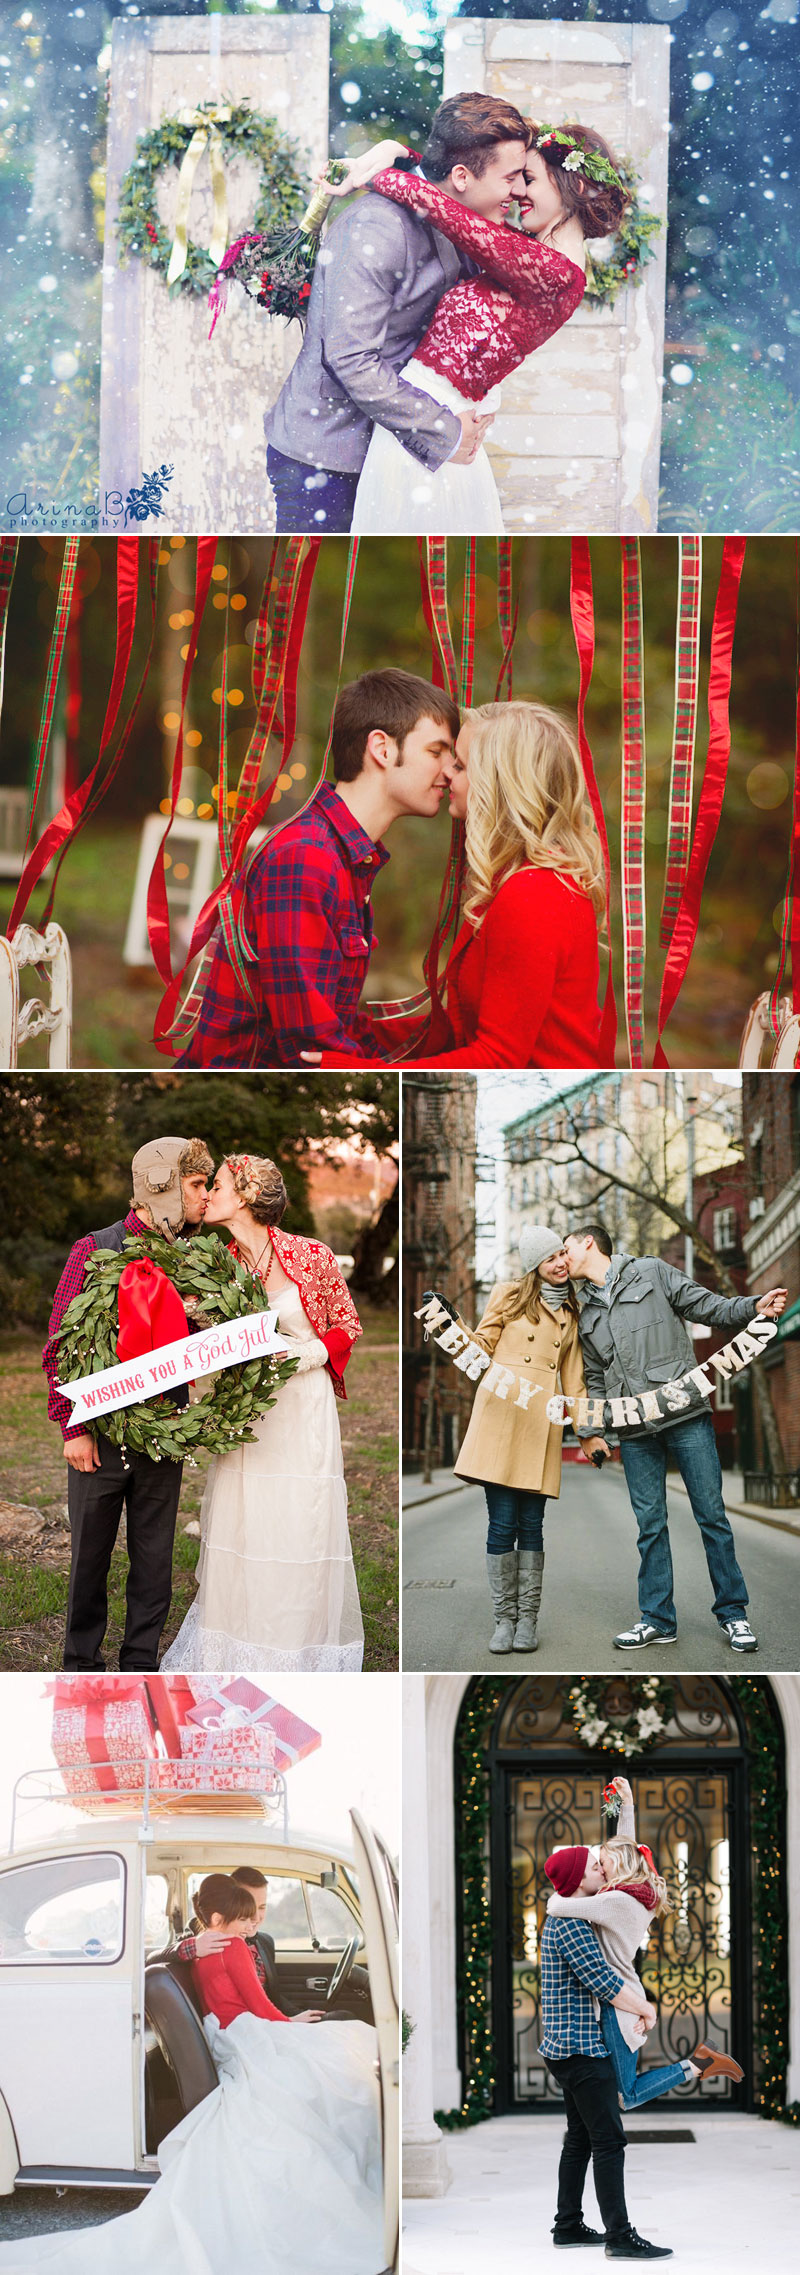 Lovely Cute Couple Christmas Photo Ideas Collections | Photo And ...